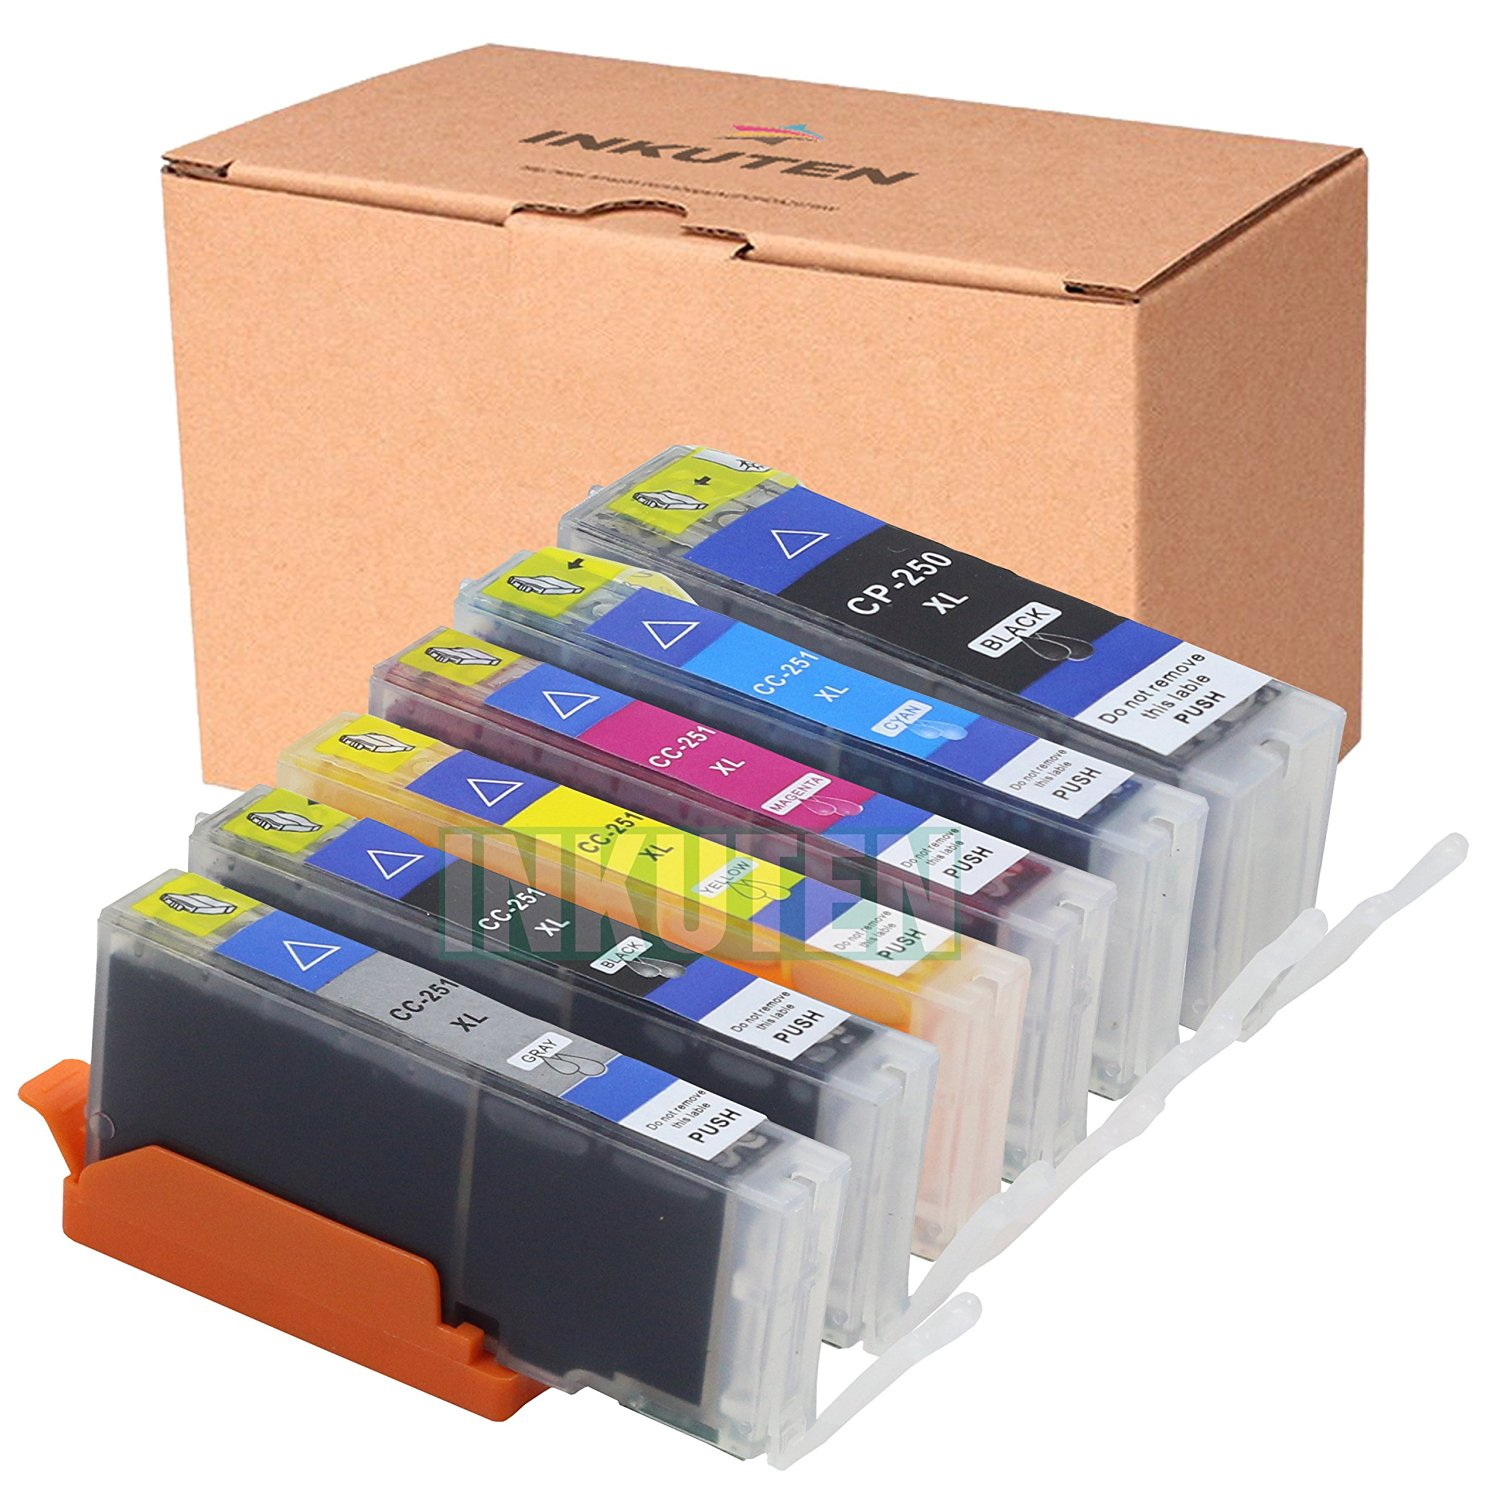 INKUTEN (TM) Compatible Ink Cartridge Replacement for Canon PGI-250XL CLI-251XL High Yield (1 large Black, 1 Cyan, 1 Magenta, 1 Yellow, 1 Small Black, 1 Grey) - 6 Pack